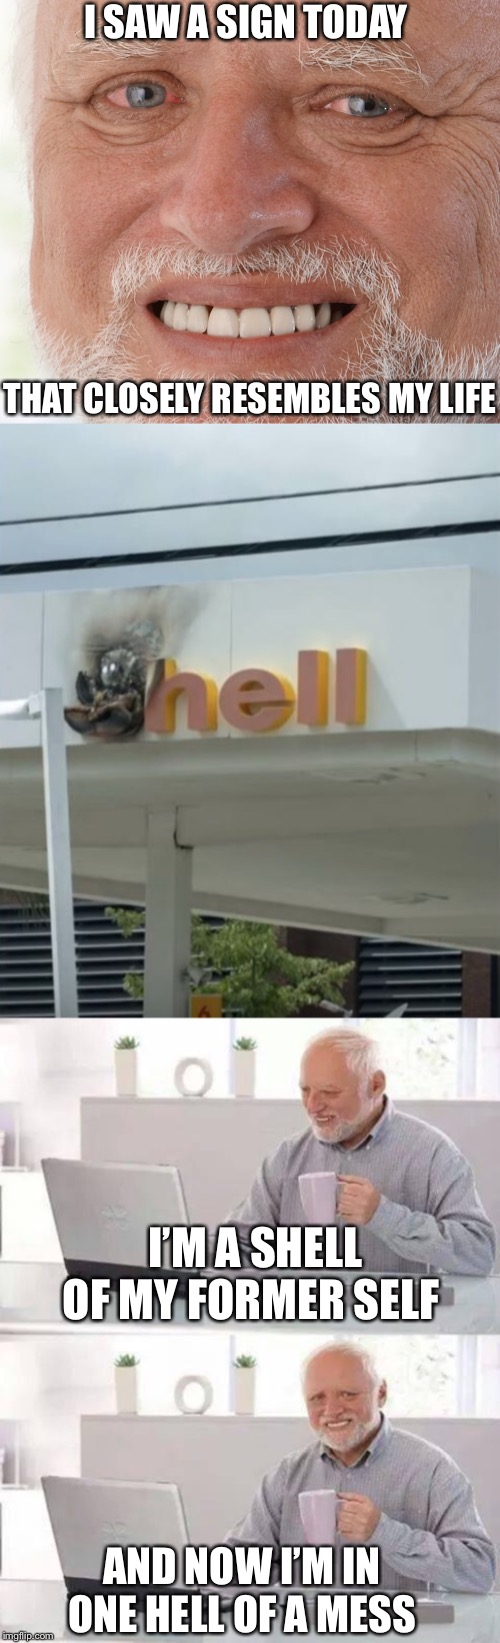 Welcome to hell | I'M A SHELL OF MY FORMER SELF AND NOW I'M IN ONE HELL OF A MESS I SAW A SIGN TODAY THAT CLOSELY RESEMBLES MY LIFE | image tagged in memes,hide the pain harold,shell,explosion,what the hell,stupid signs | made w/ Imgflip meme maker